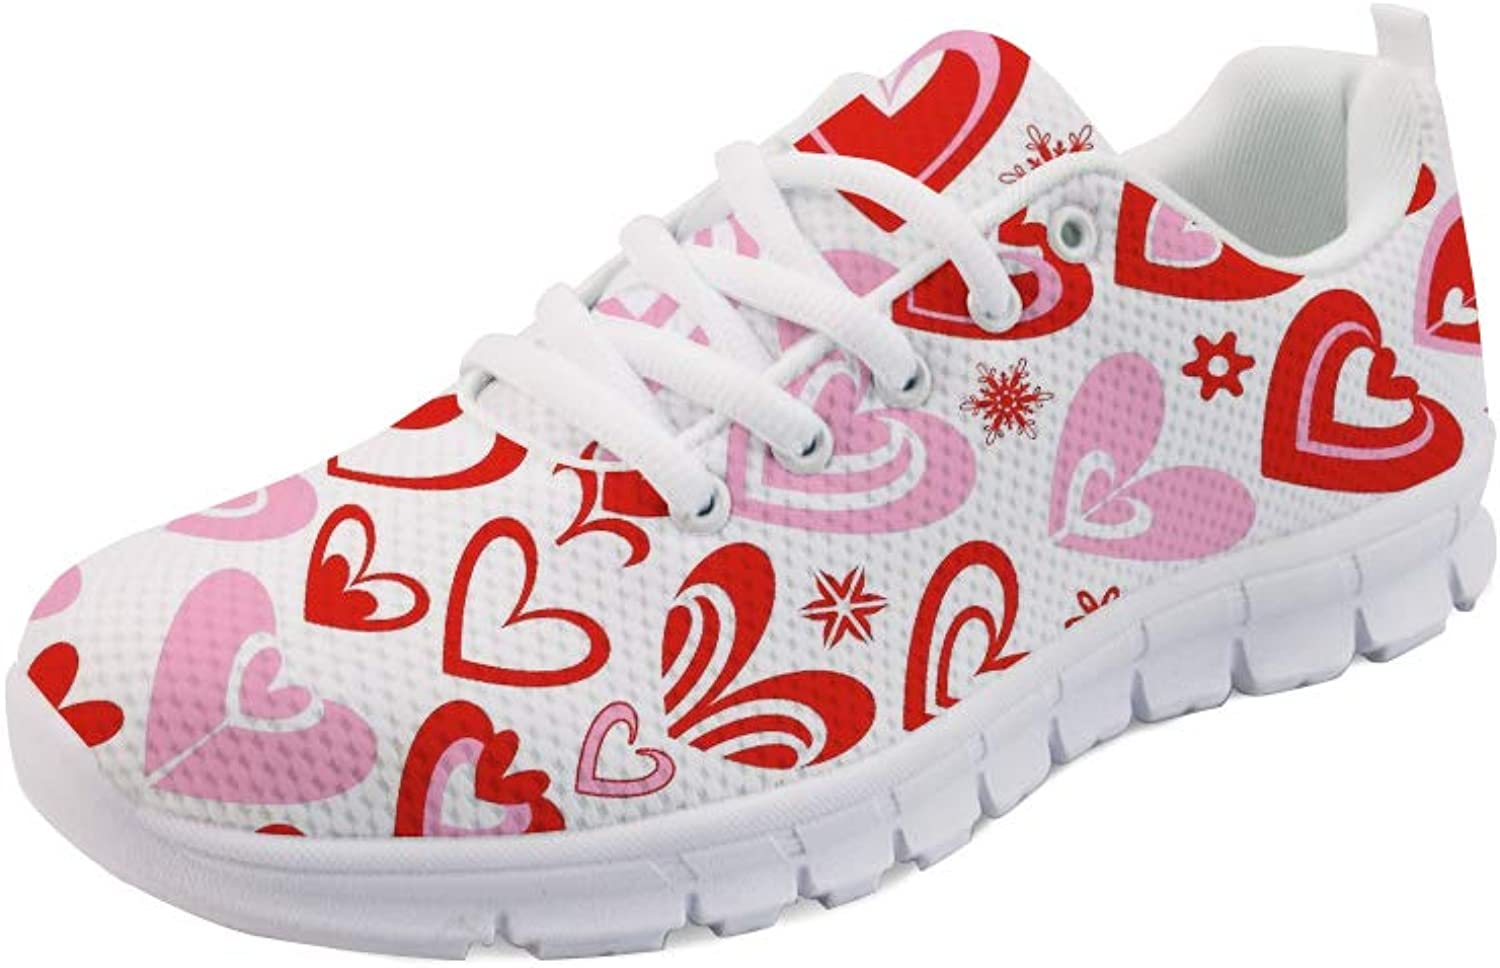 coloranimal Women Jogging Road Running Sneakers Lightweight Mesh Lace-up Flat shoes